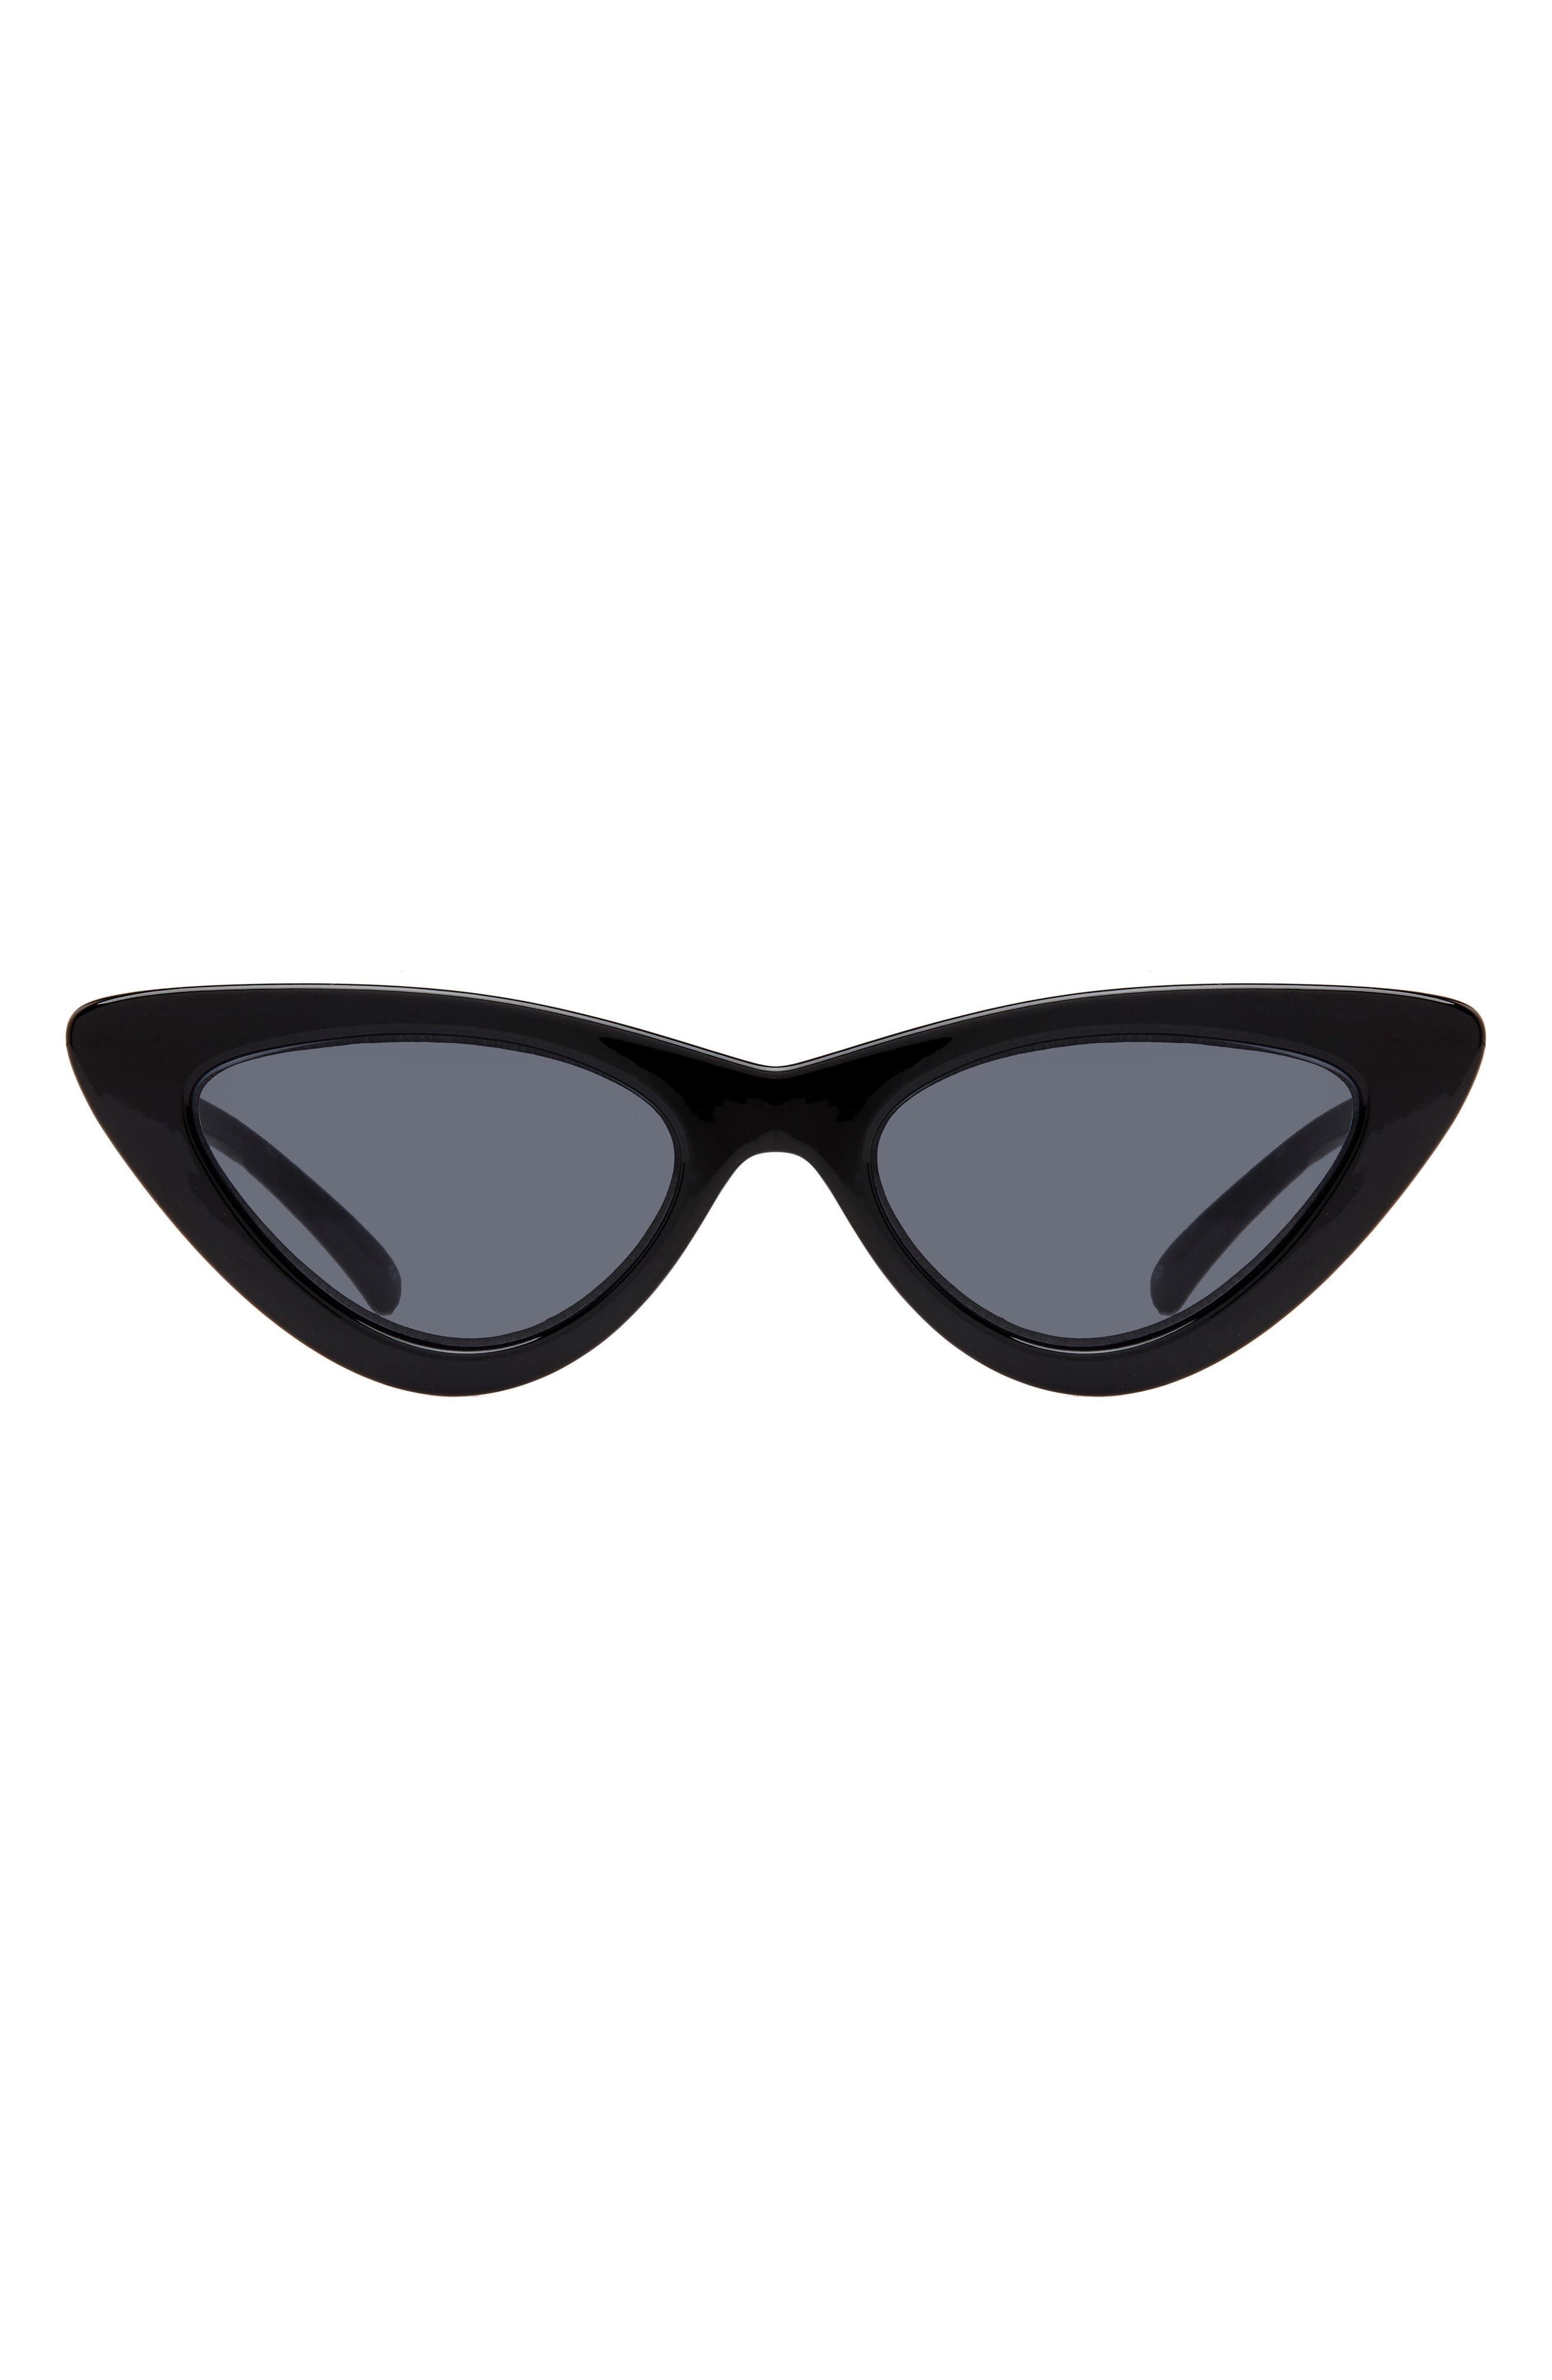 Lolita 49mm Cat Eye Sunglasses,                             Alternate thumbnail 4, color,                             BLACK